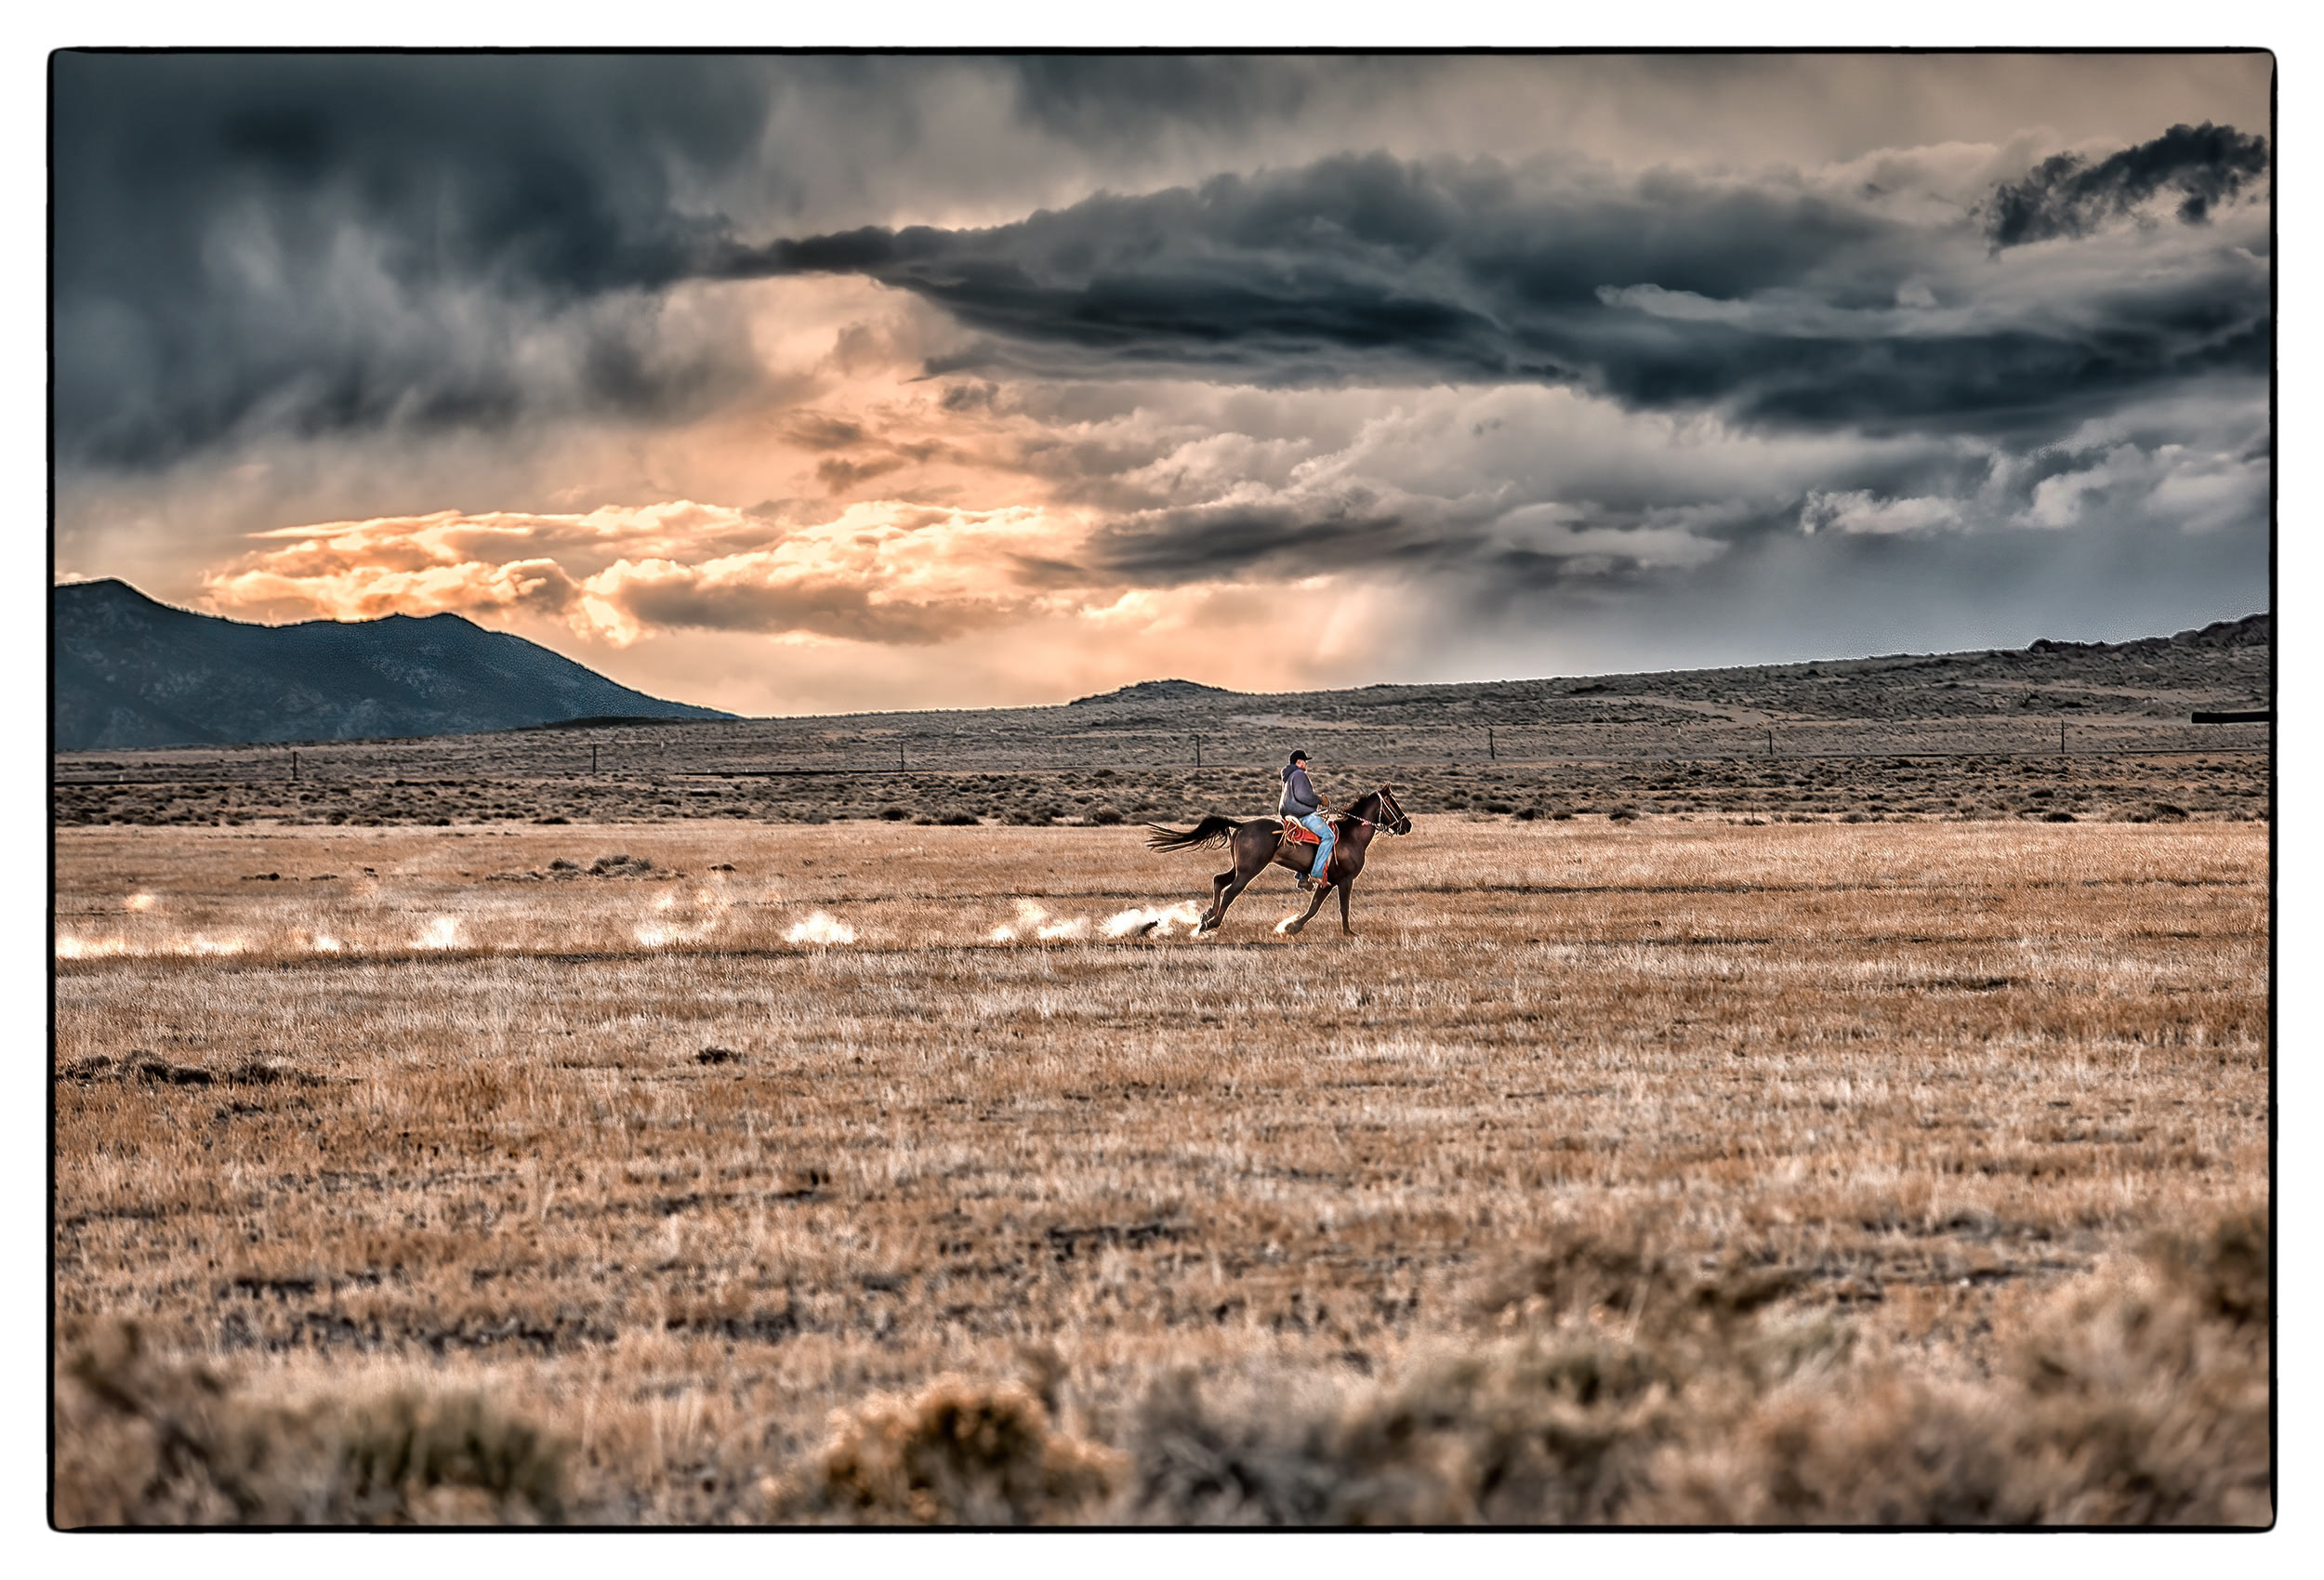 a-man-on-a-horseback-rush-back-to-their-farm-to-beat-an-approaching-storm-in-the-nevada-desert